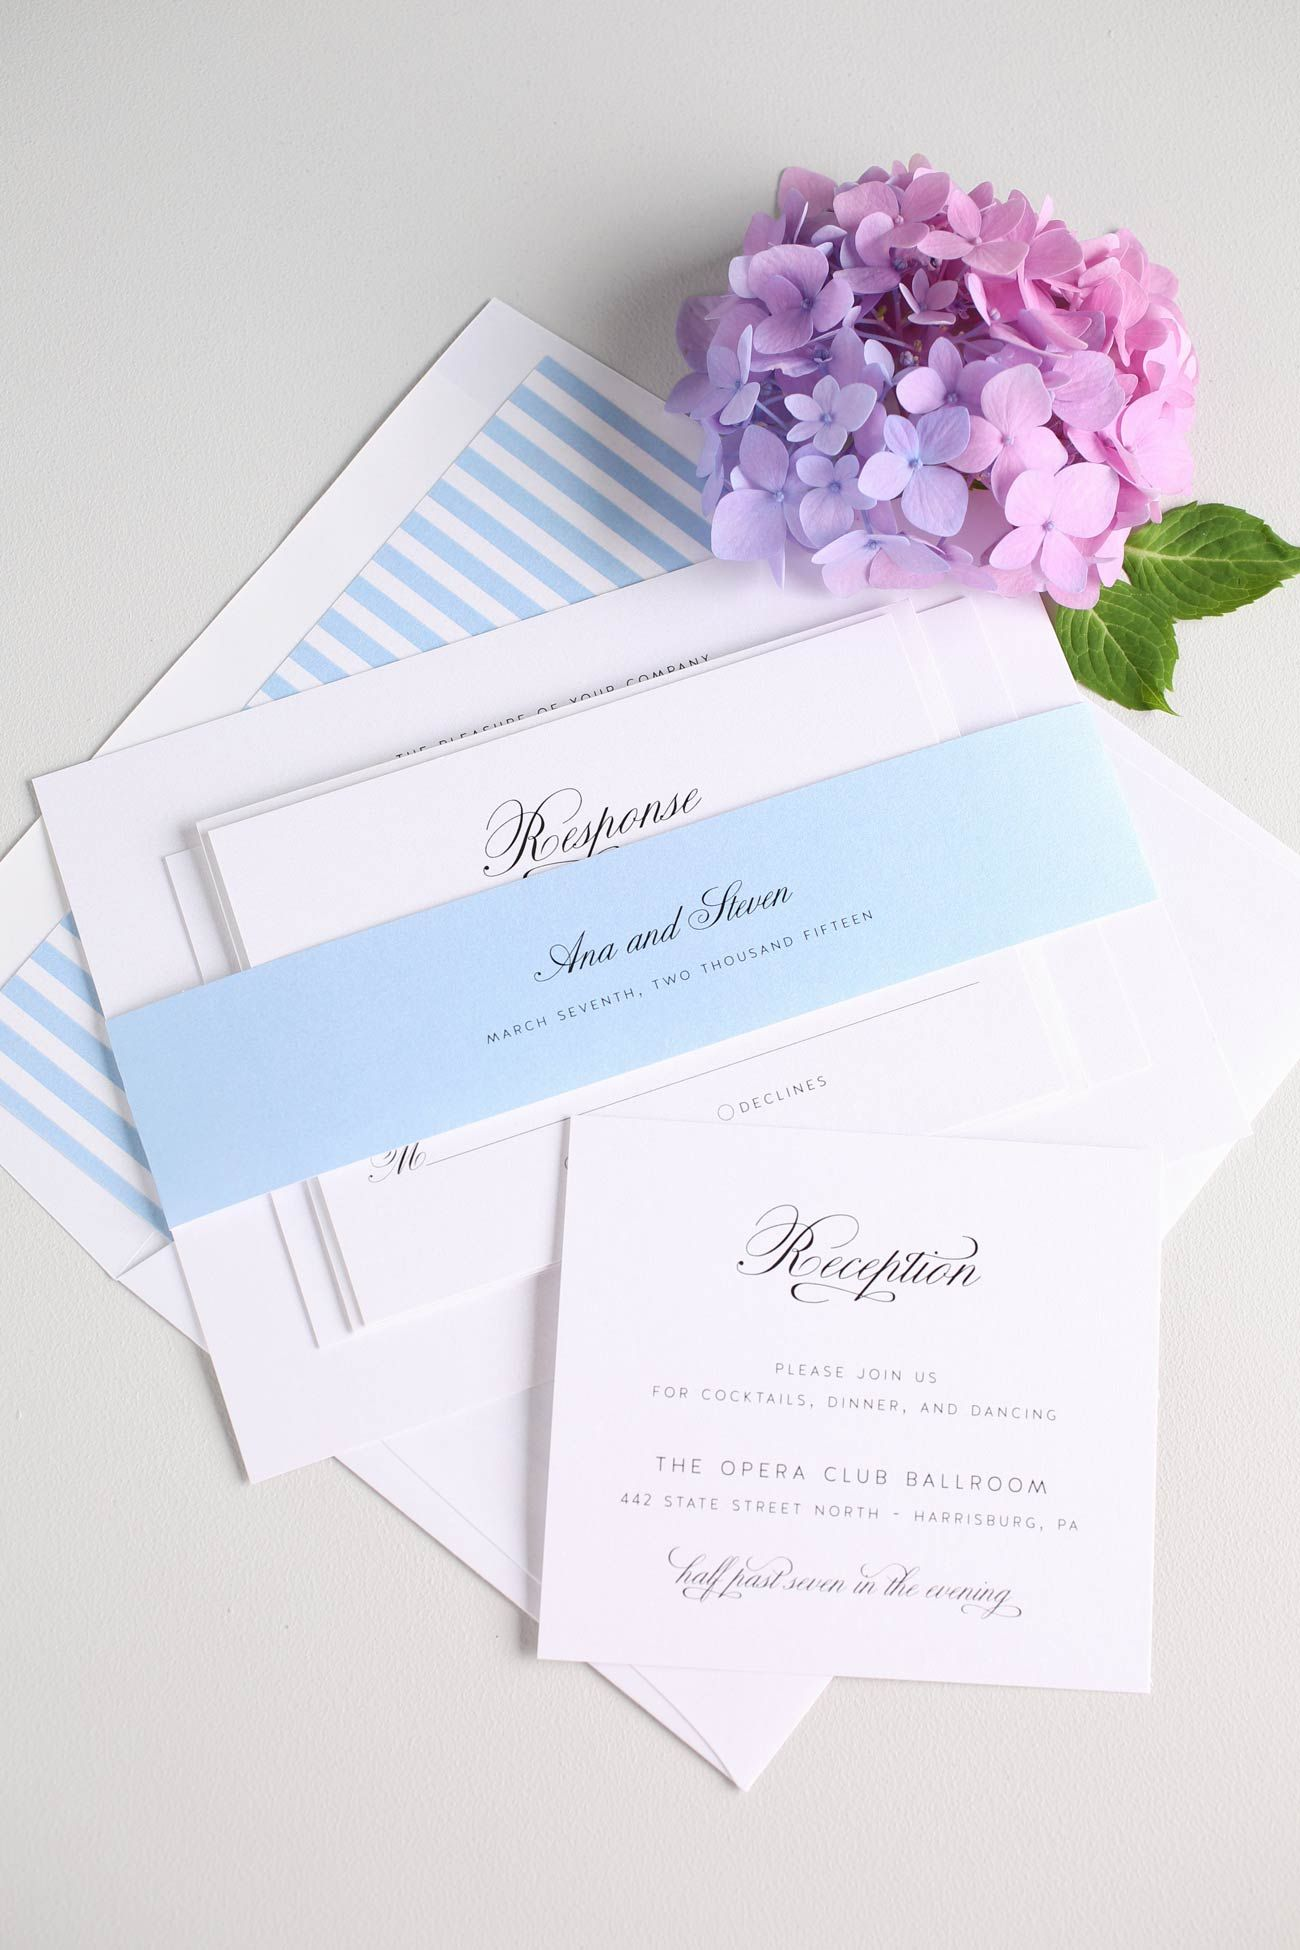 Vintage and Romantic Sky Blue Wedding Invitations with a Striped Envelope Liner | 1940s